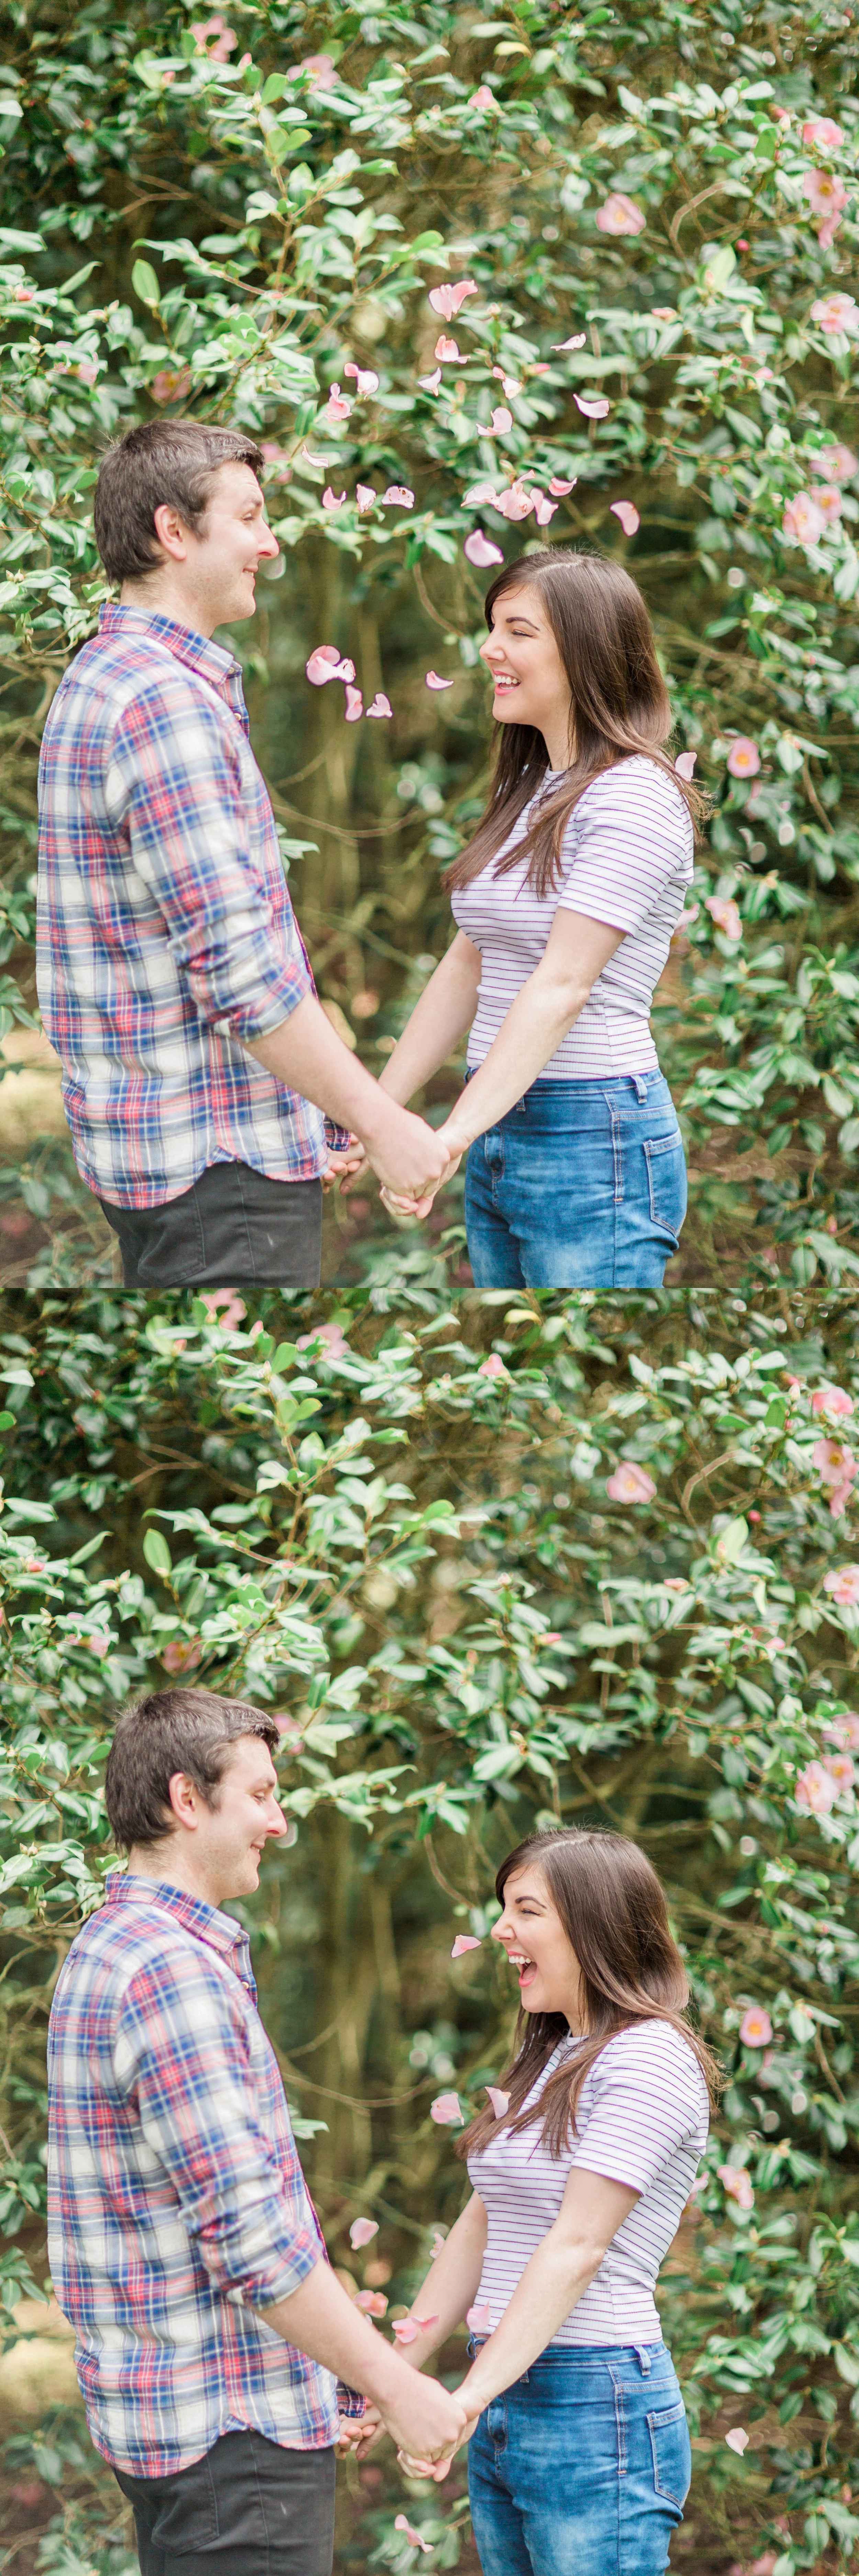 Libby & Ricky Engagement Blog-12.jpg